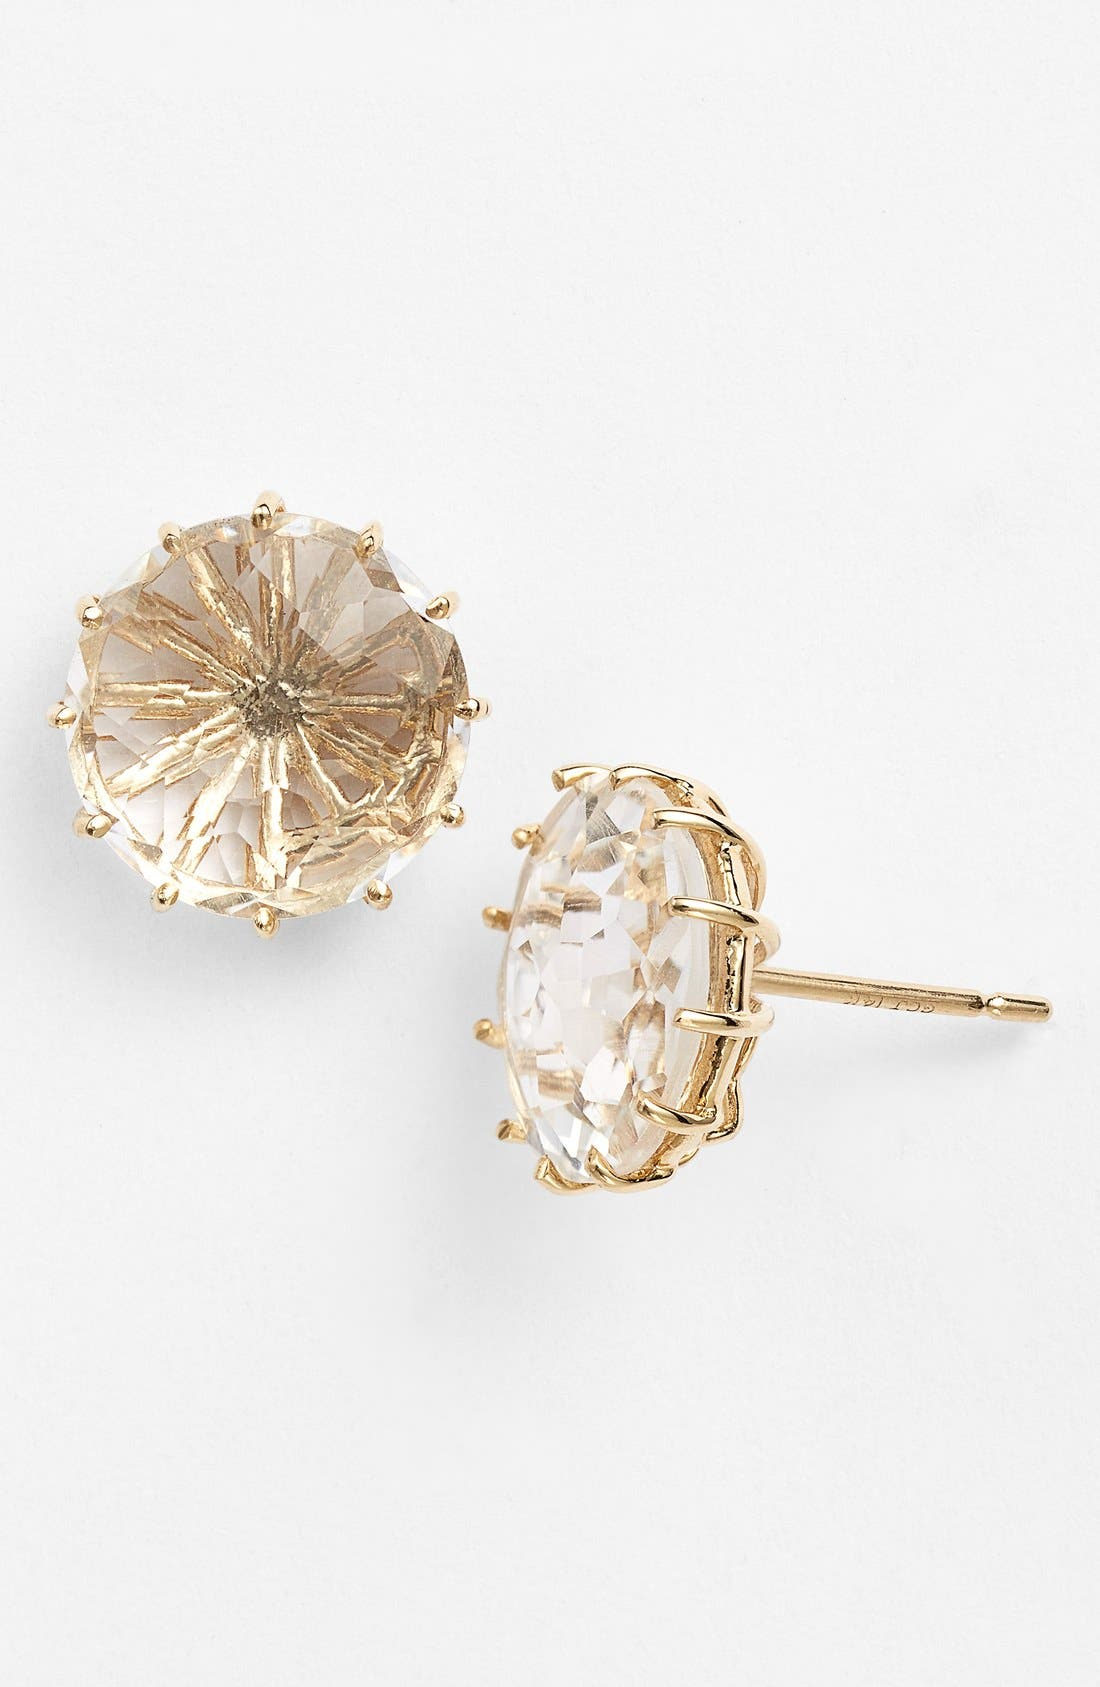 Main Image - KALAN by Suzanne Kalan Stone Stud Earrings